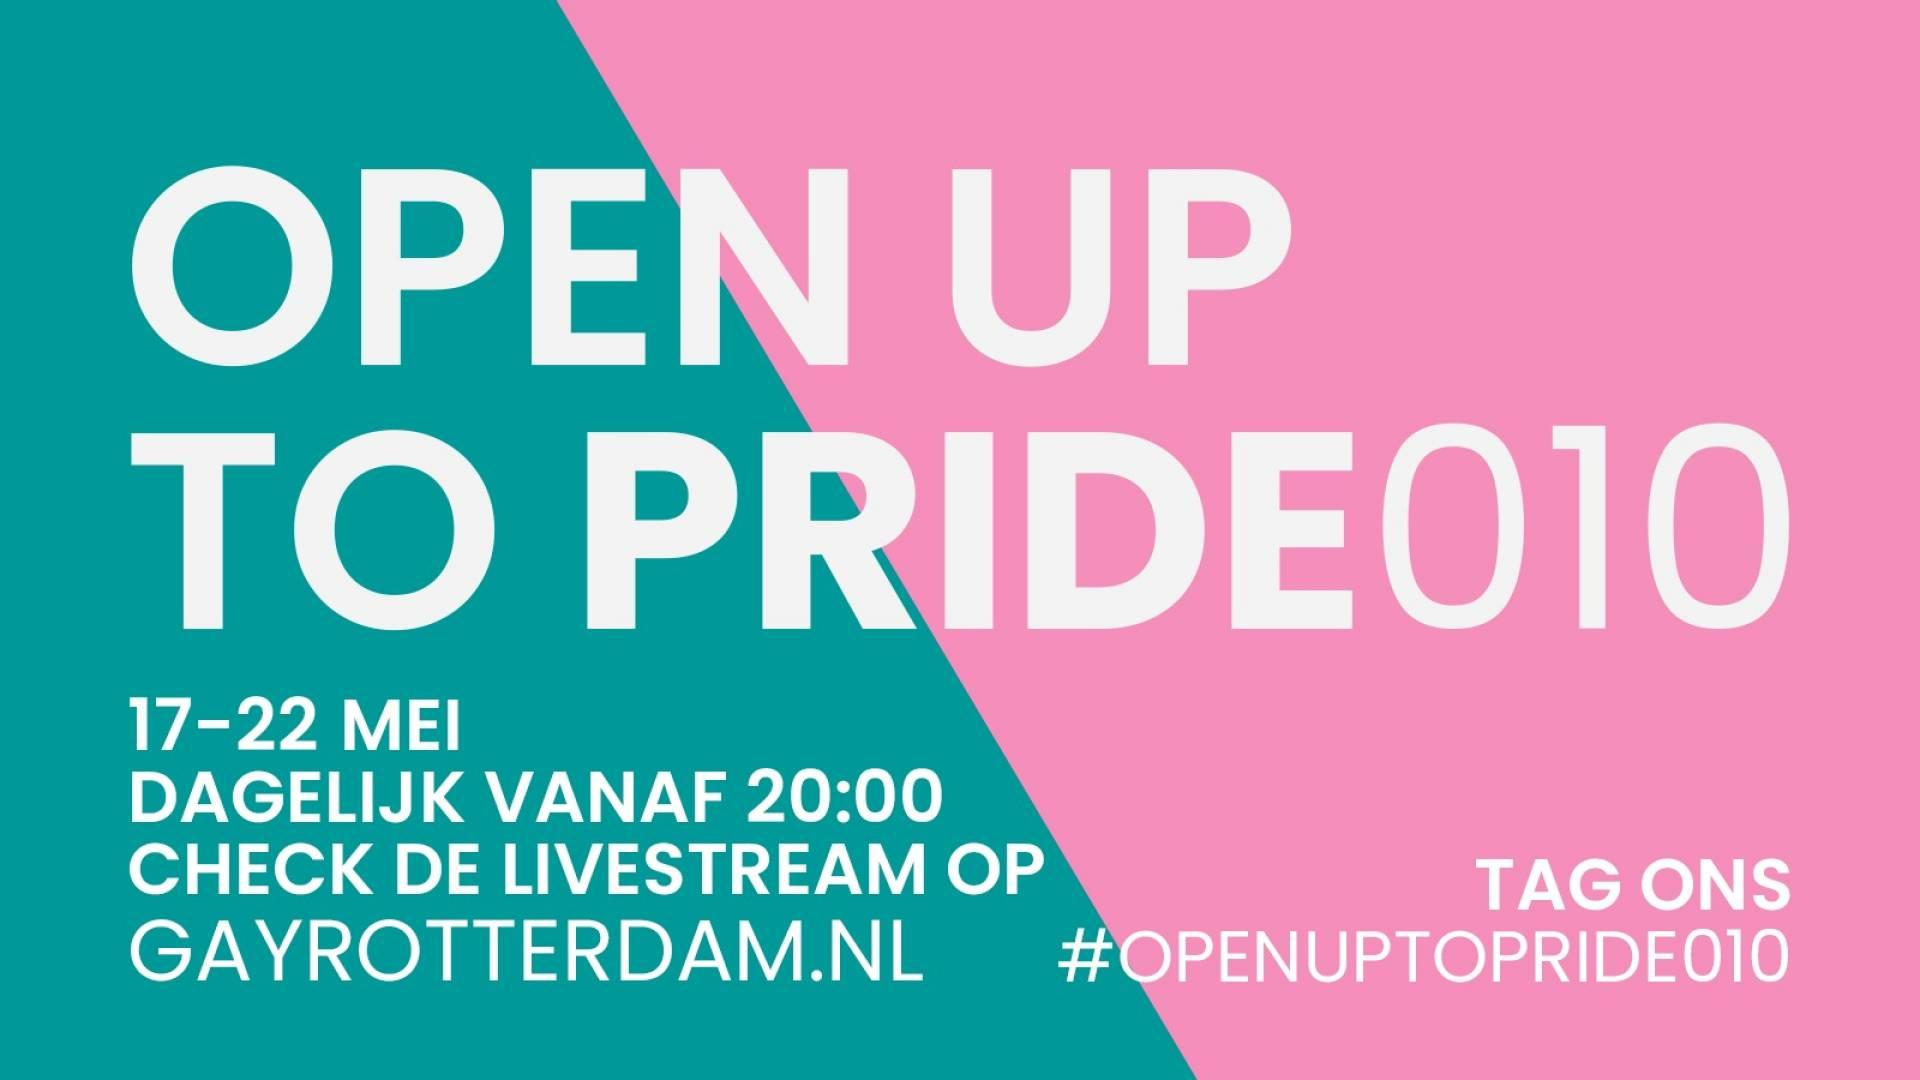 Open Up to Pride010